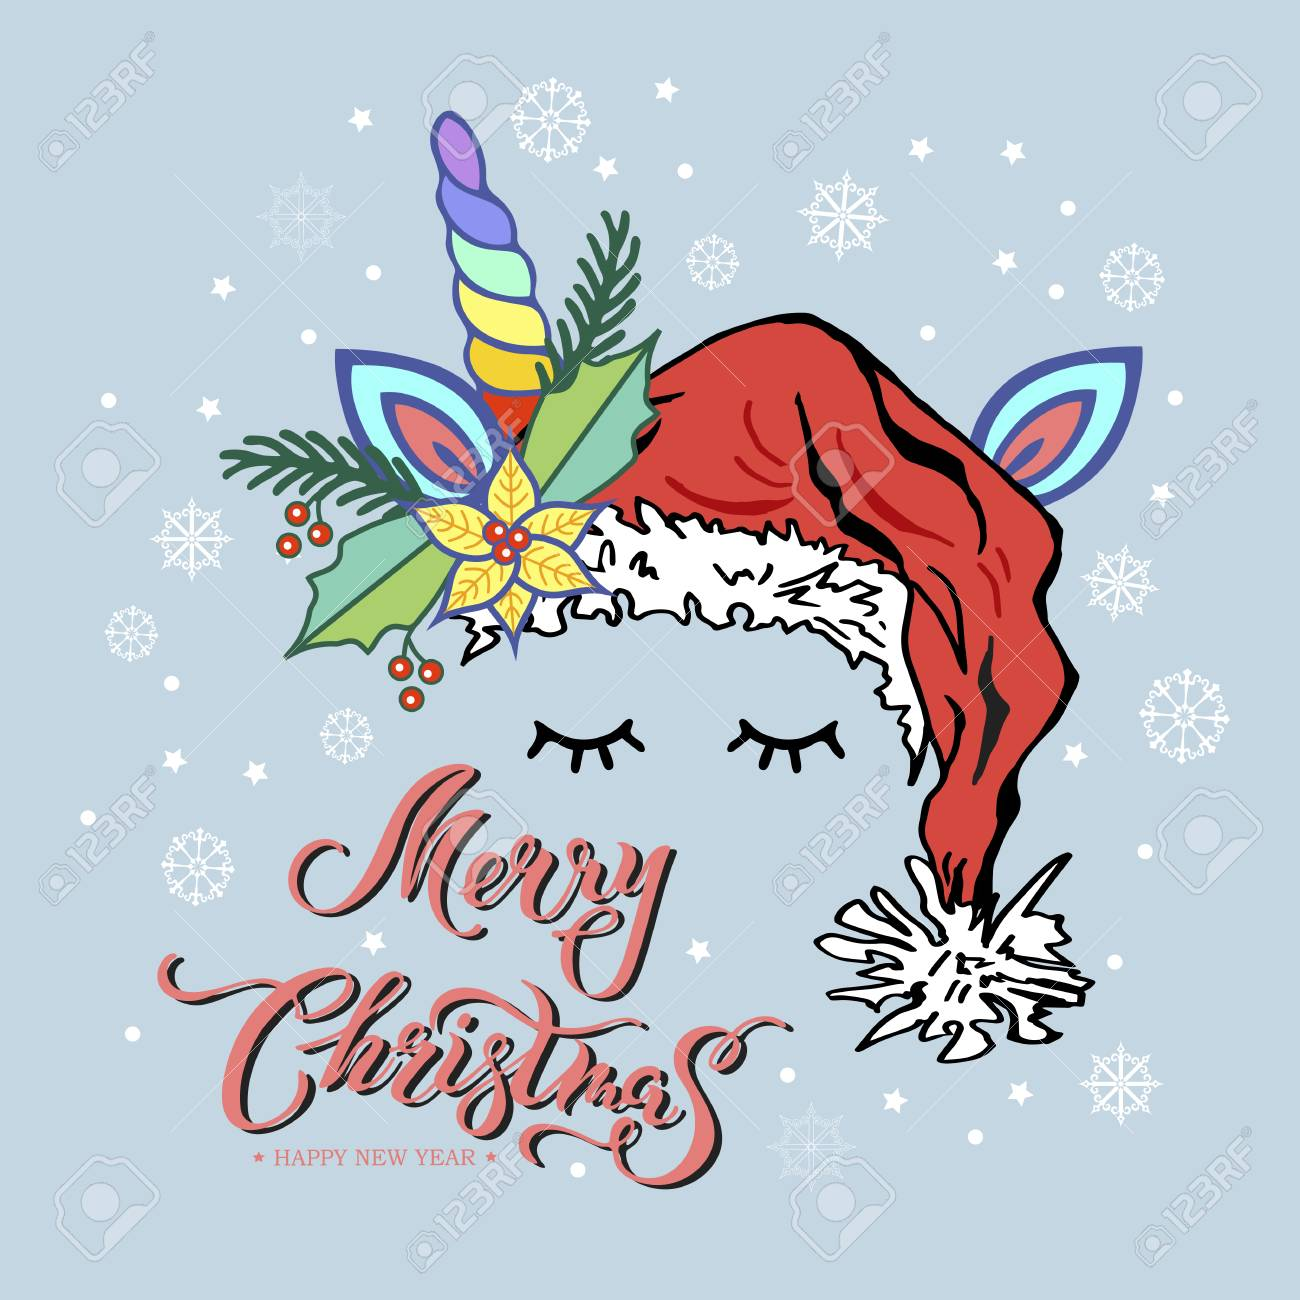 Merry Christmas Card With Hand Drawn Lettering Unicorn Tiara Royalty Free Cliparts Vectors And Stock Illustration Image 95521701